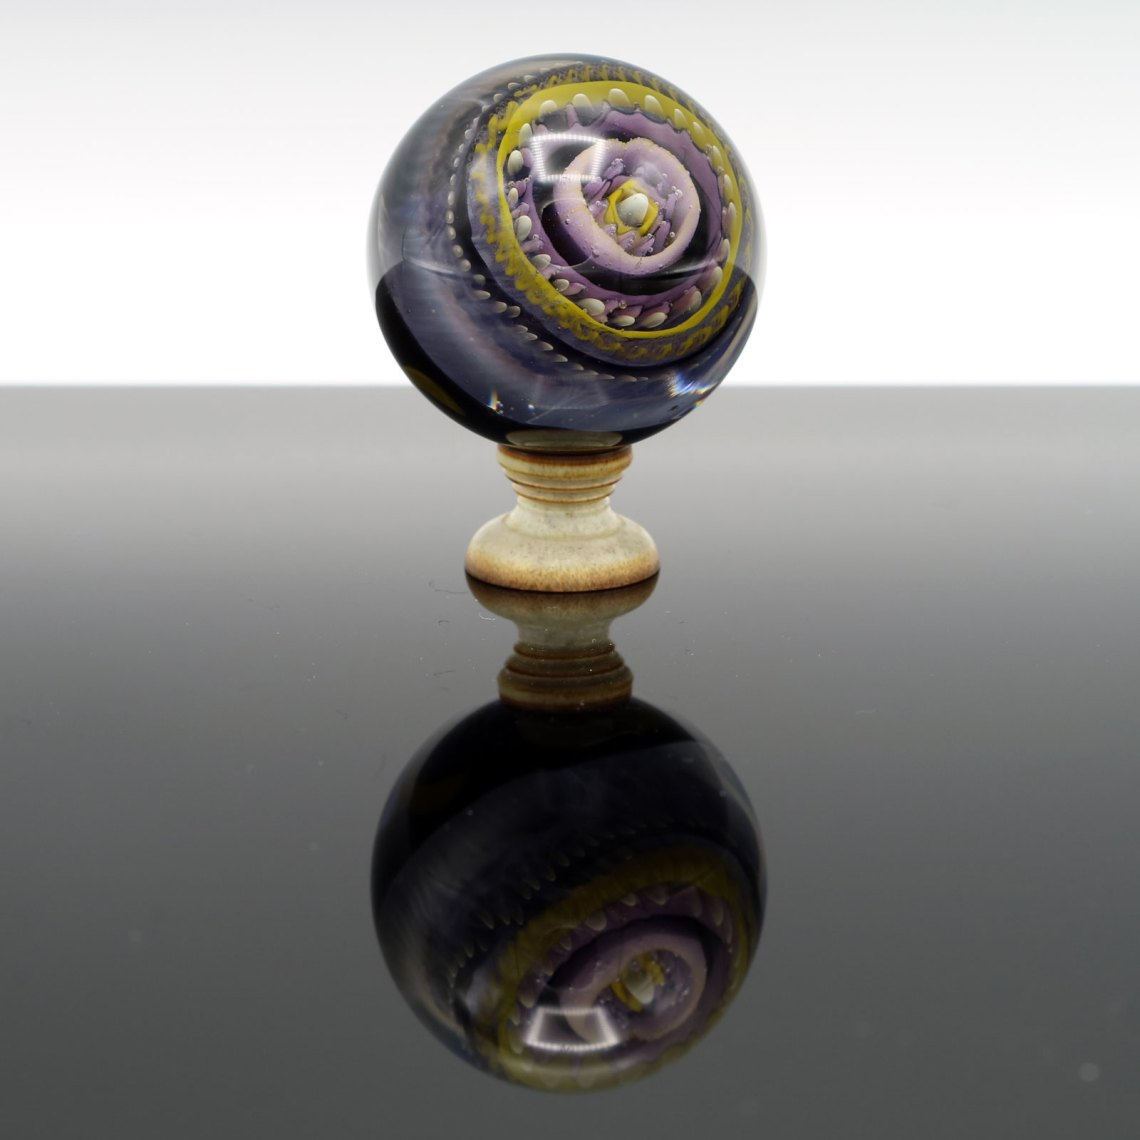 Shana Glassgirl – Small Trippy Marble